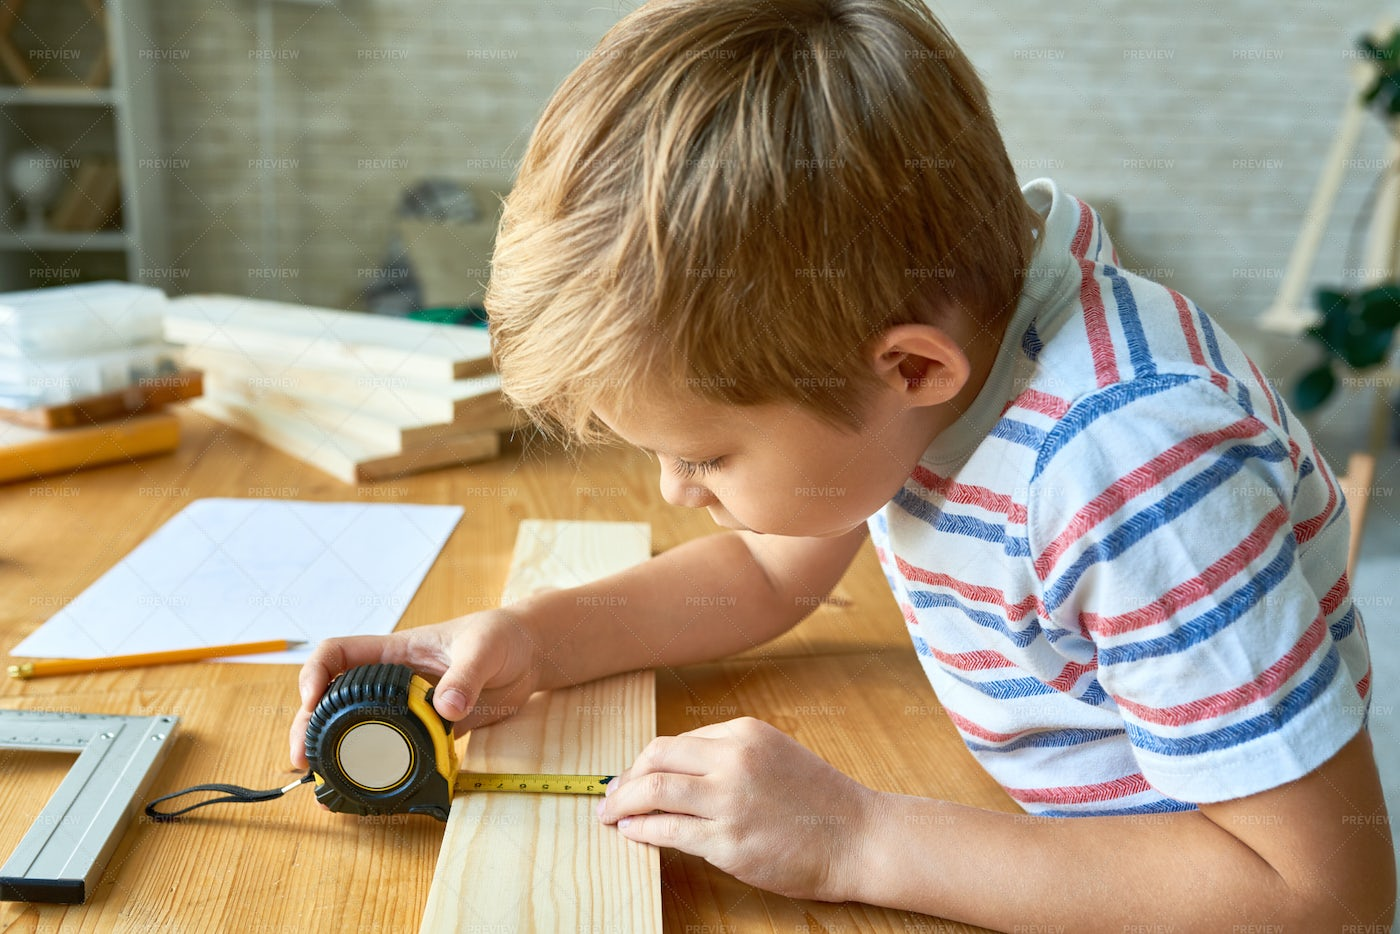 Cute Boy Working With Wood: Stock Photos